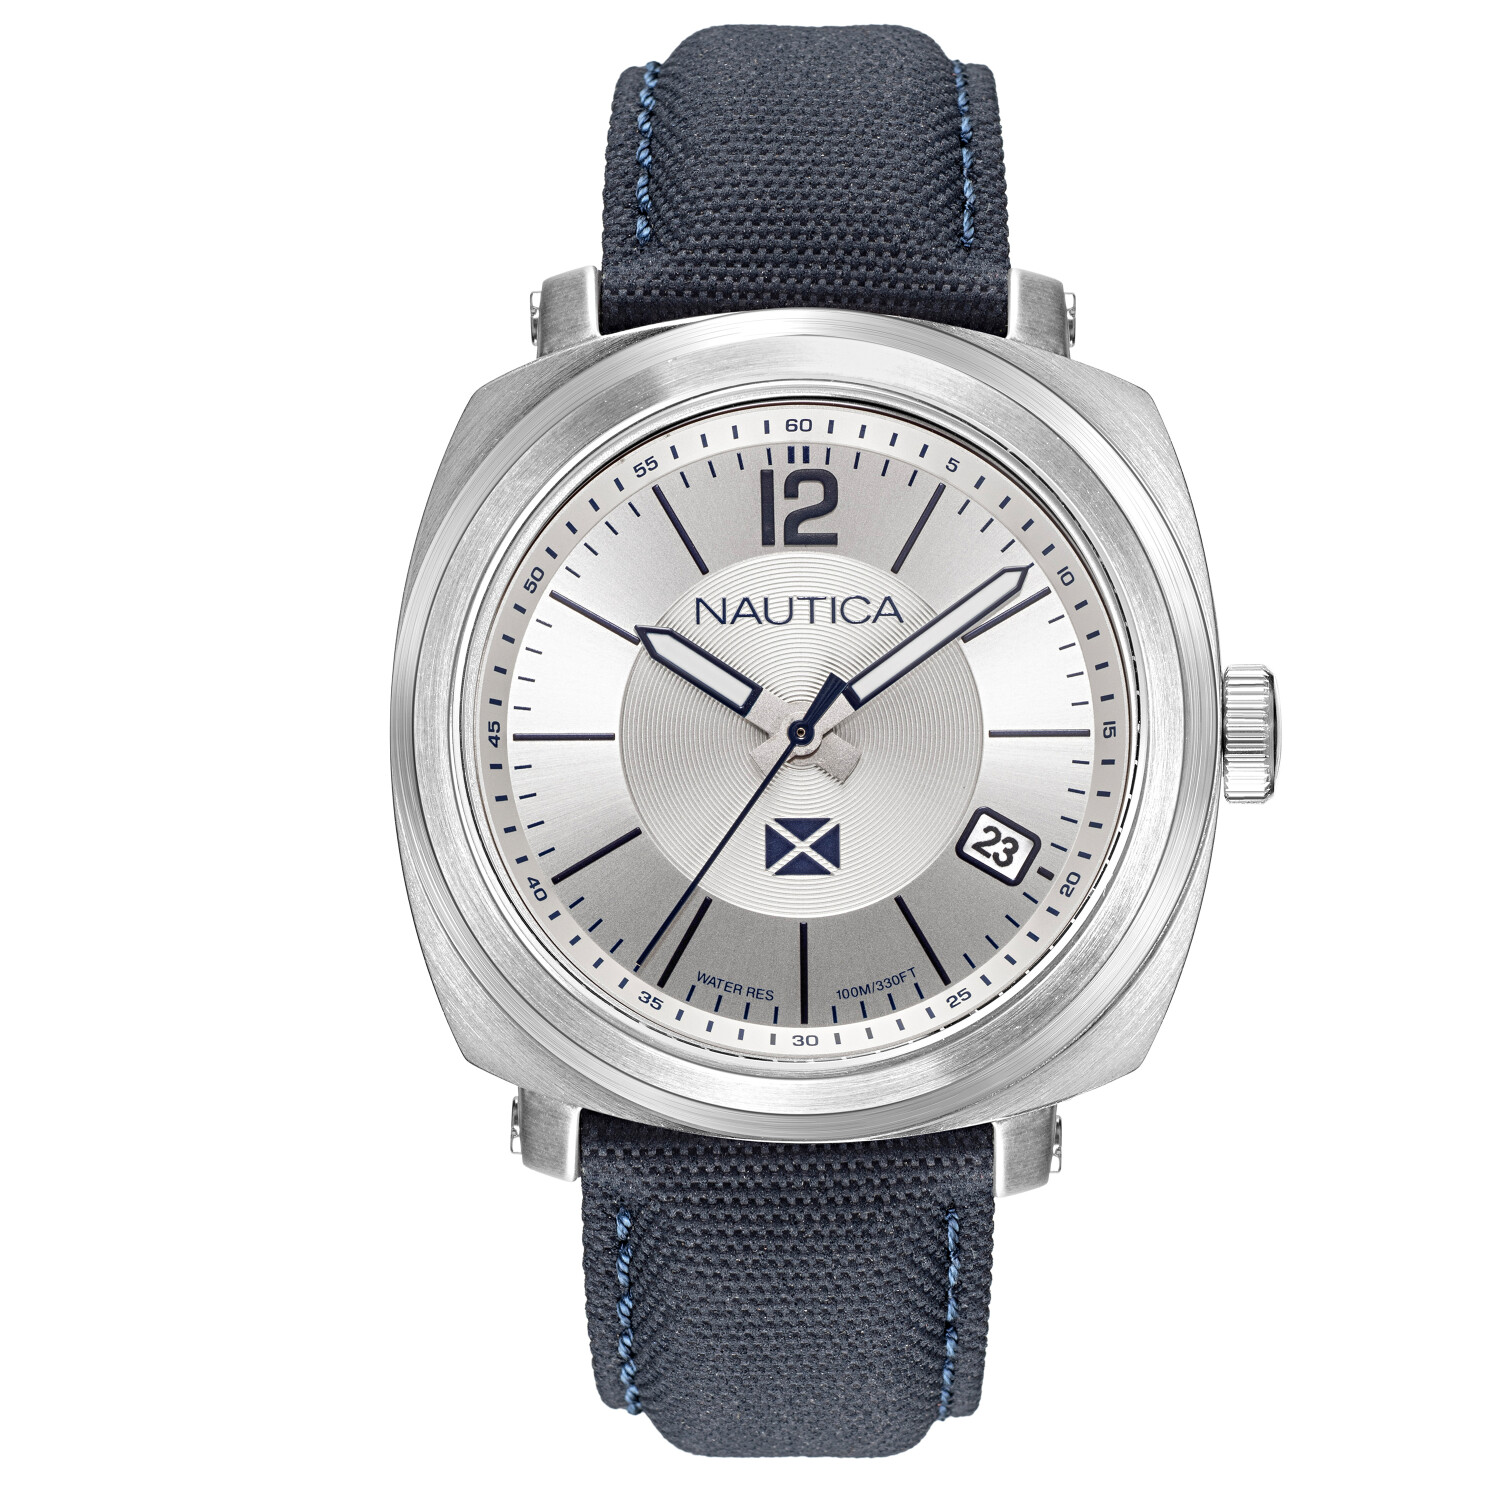 Nautica Watch NAPPGP904 Park Gate Analog, Water Resistant, Date Display, Luminous Hands, Blue Leather Fabric Strap, Silver